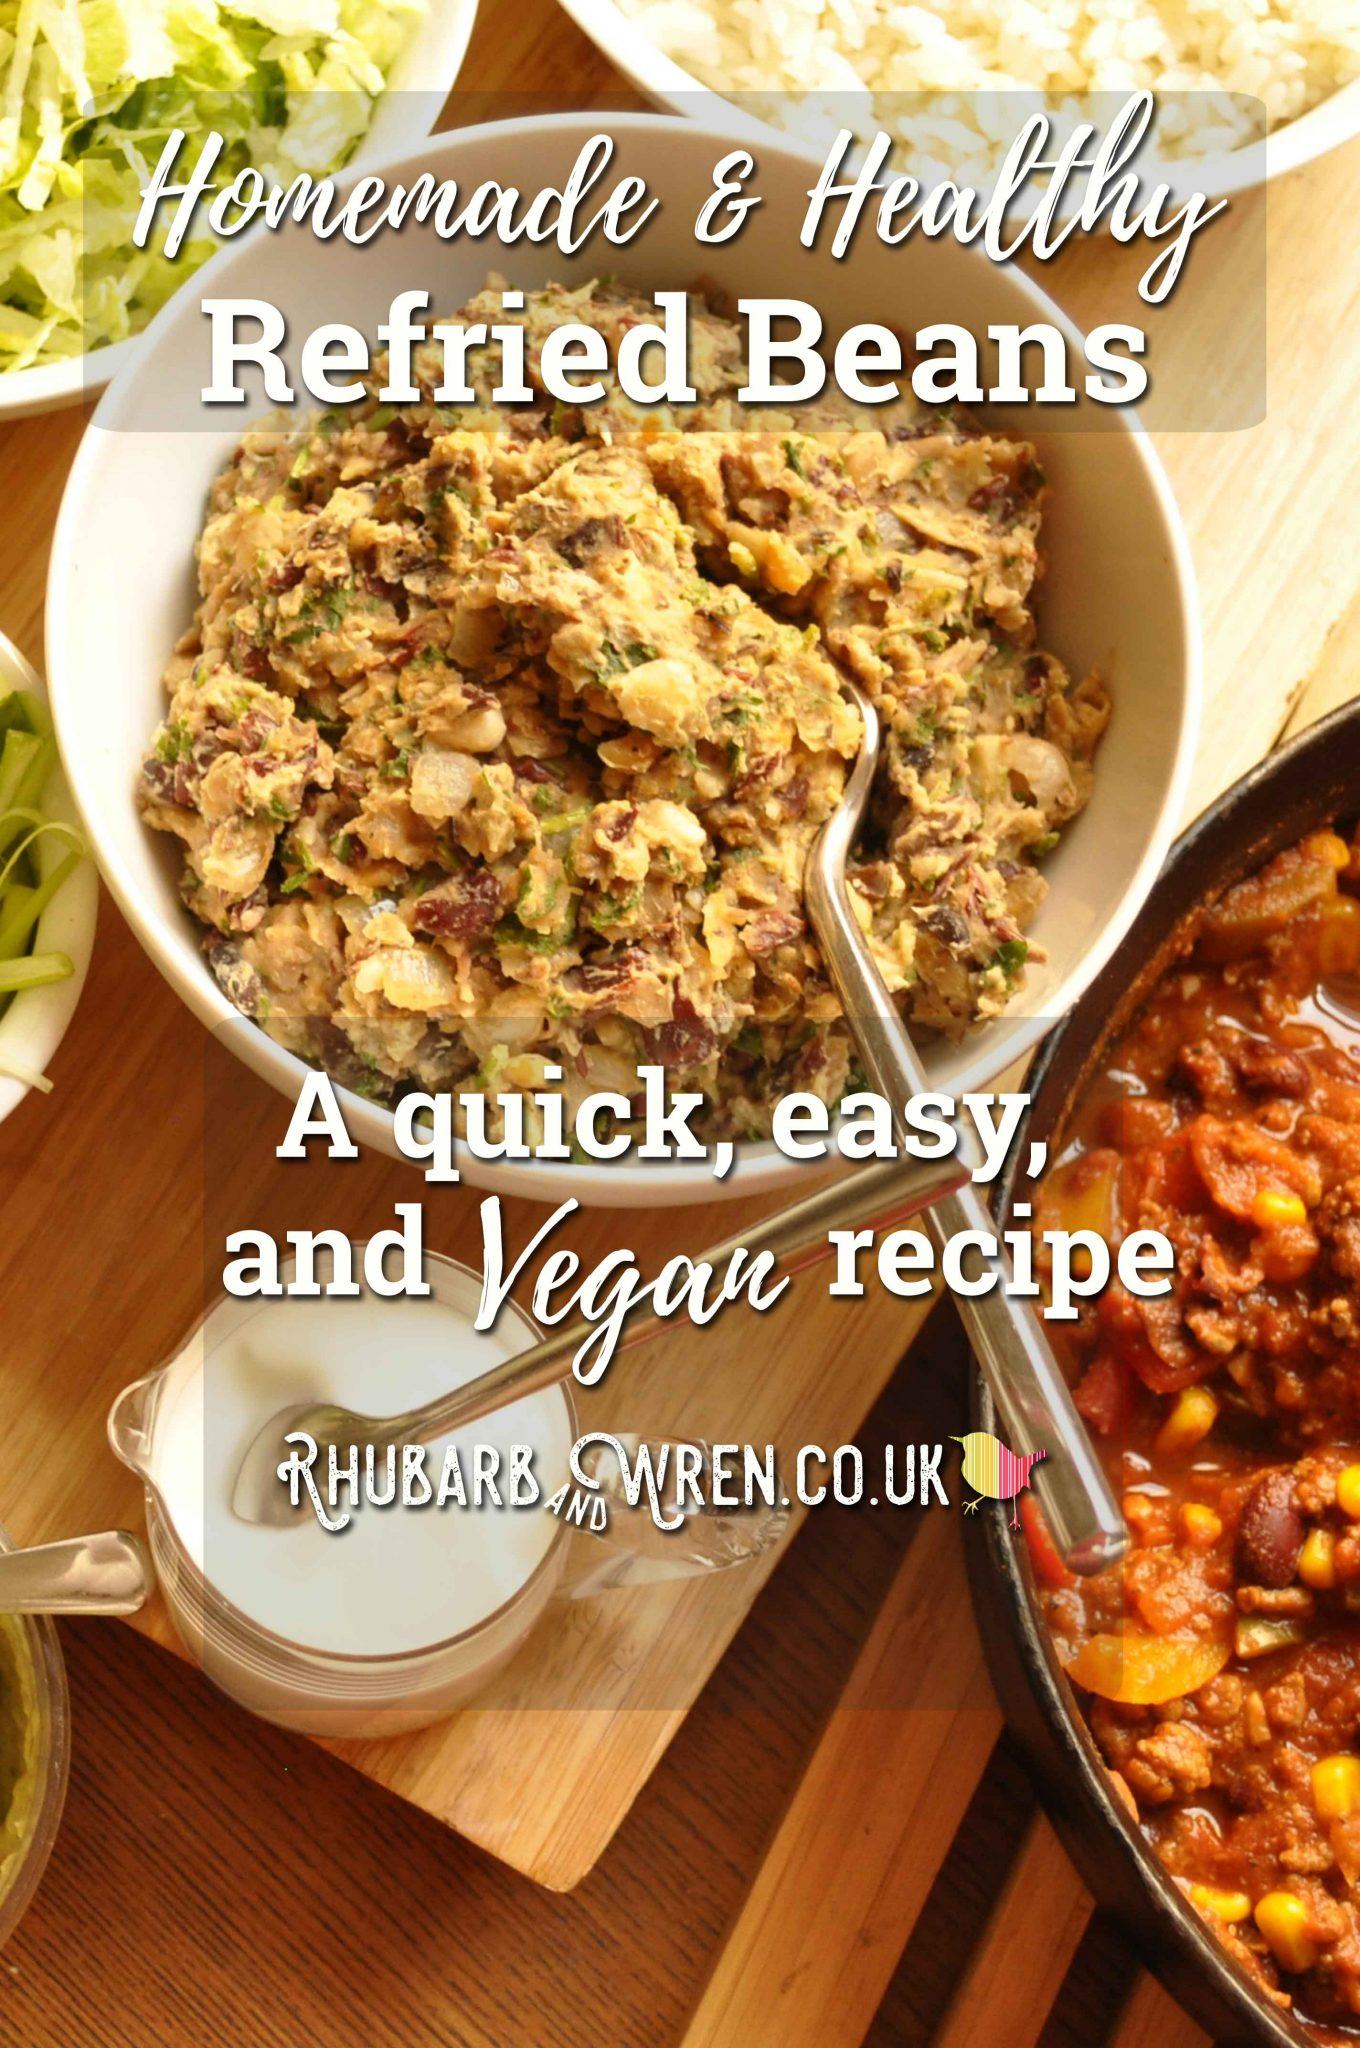 Recipe for homemade vegan refried beans made from canned beans.